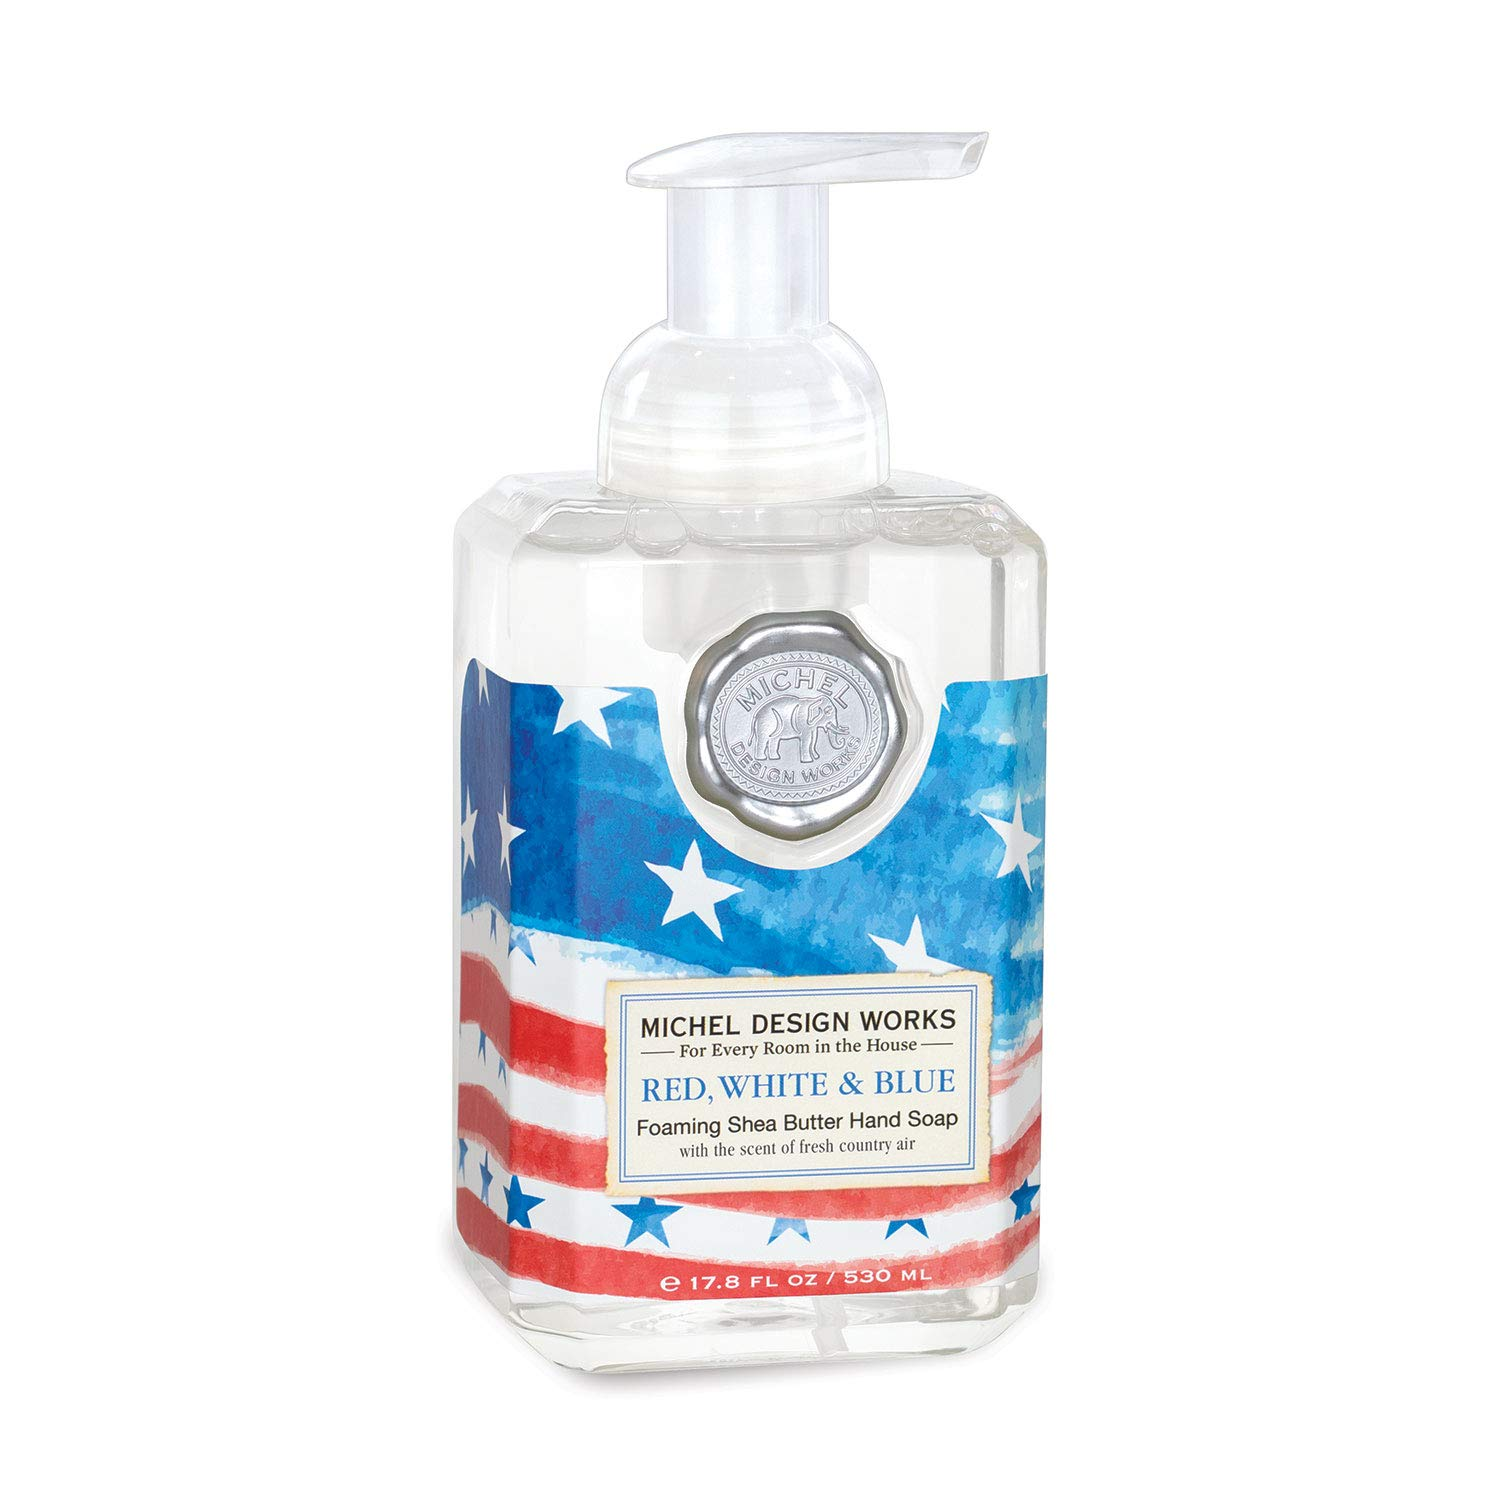 Amazon Com Michel Design Works Foaming Hand Soap Red White Blue Beauty,Acrylic Nail Designs Natural Colors